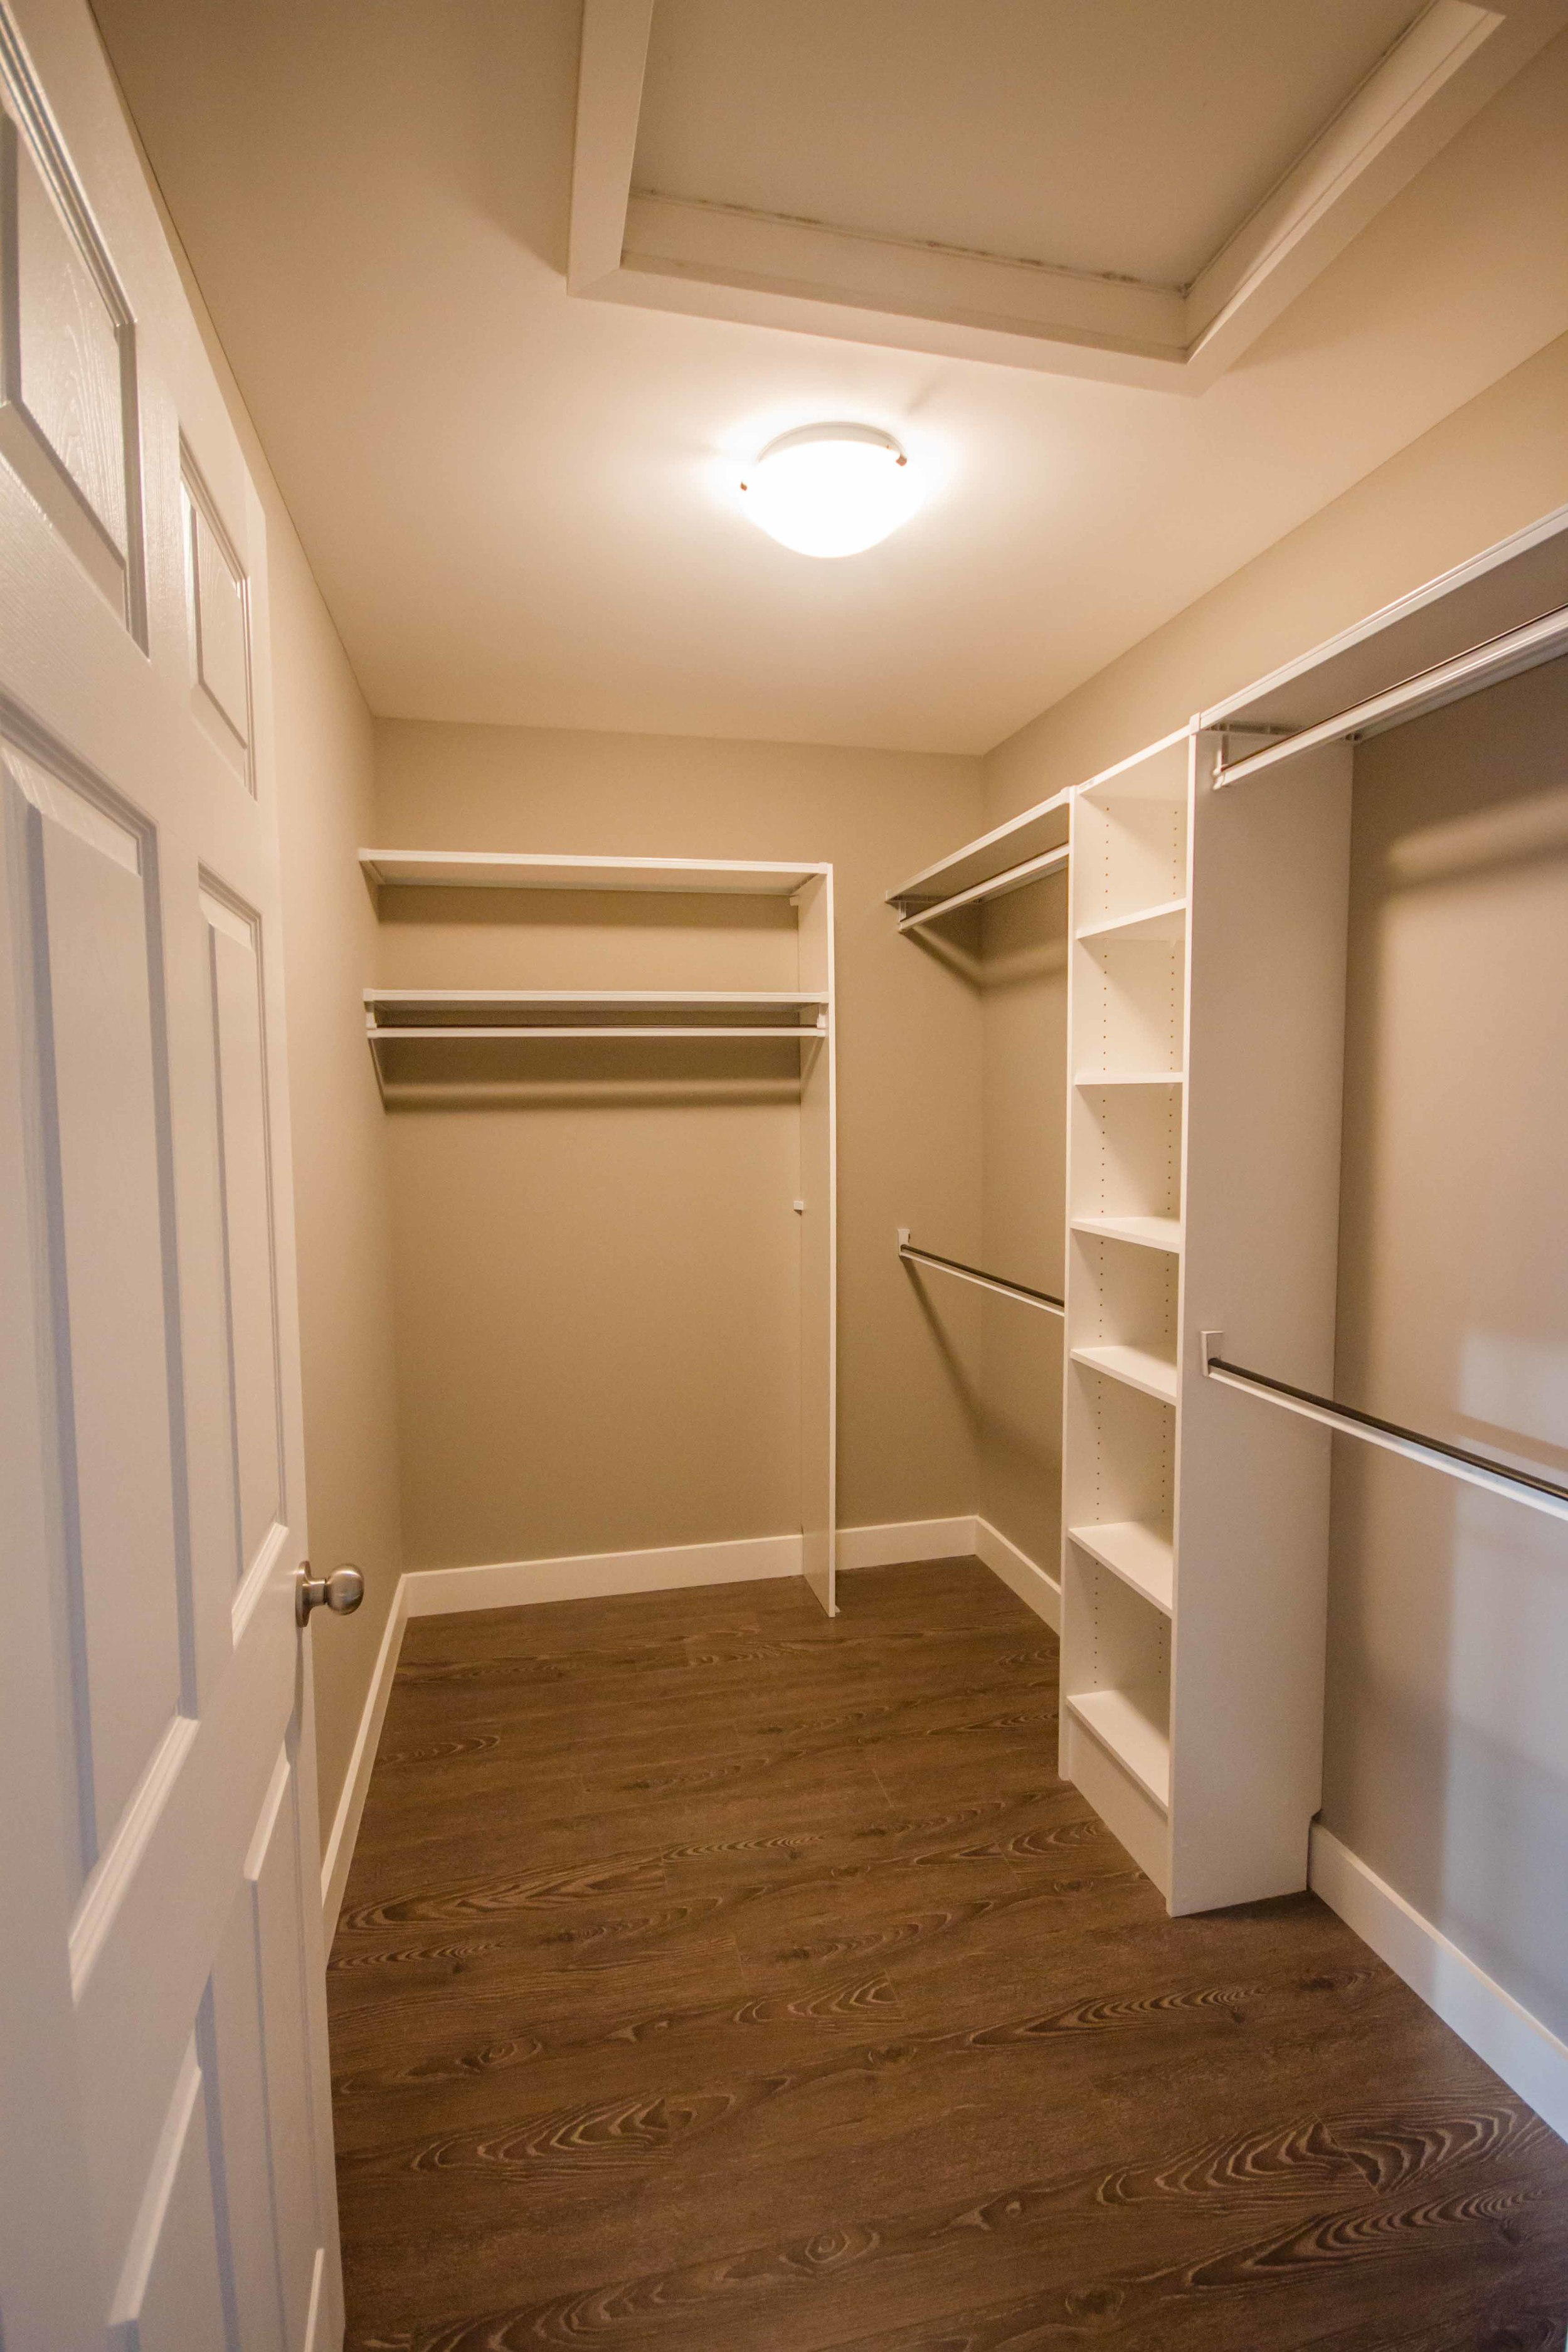 72 Kenai Crescent - Walk-in.jpg